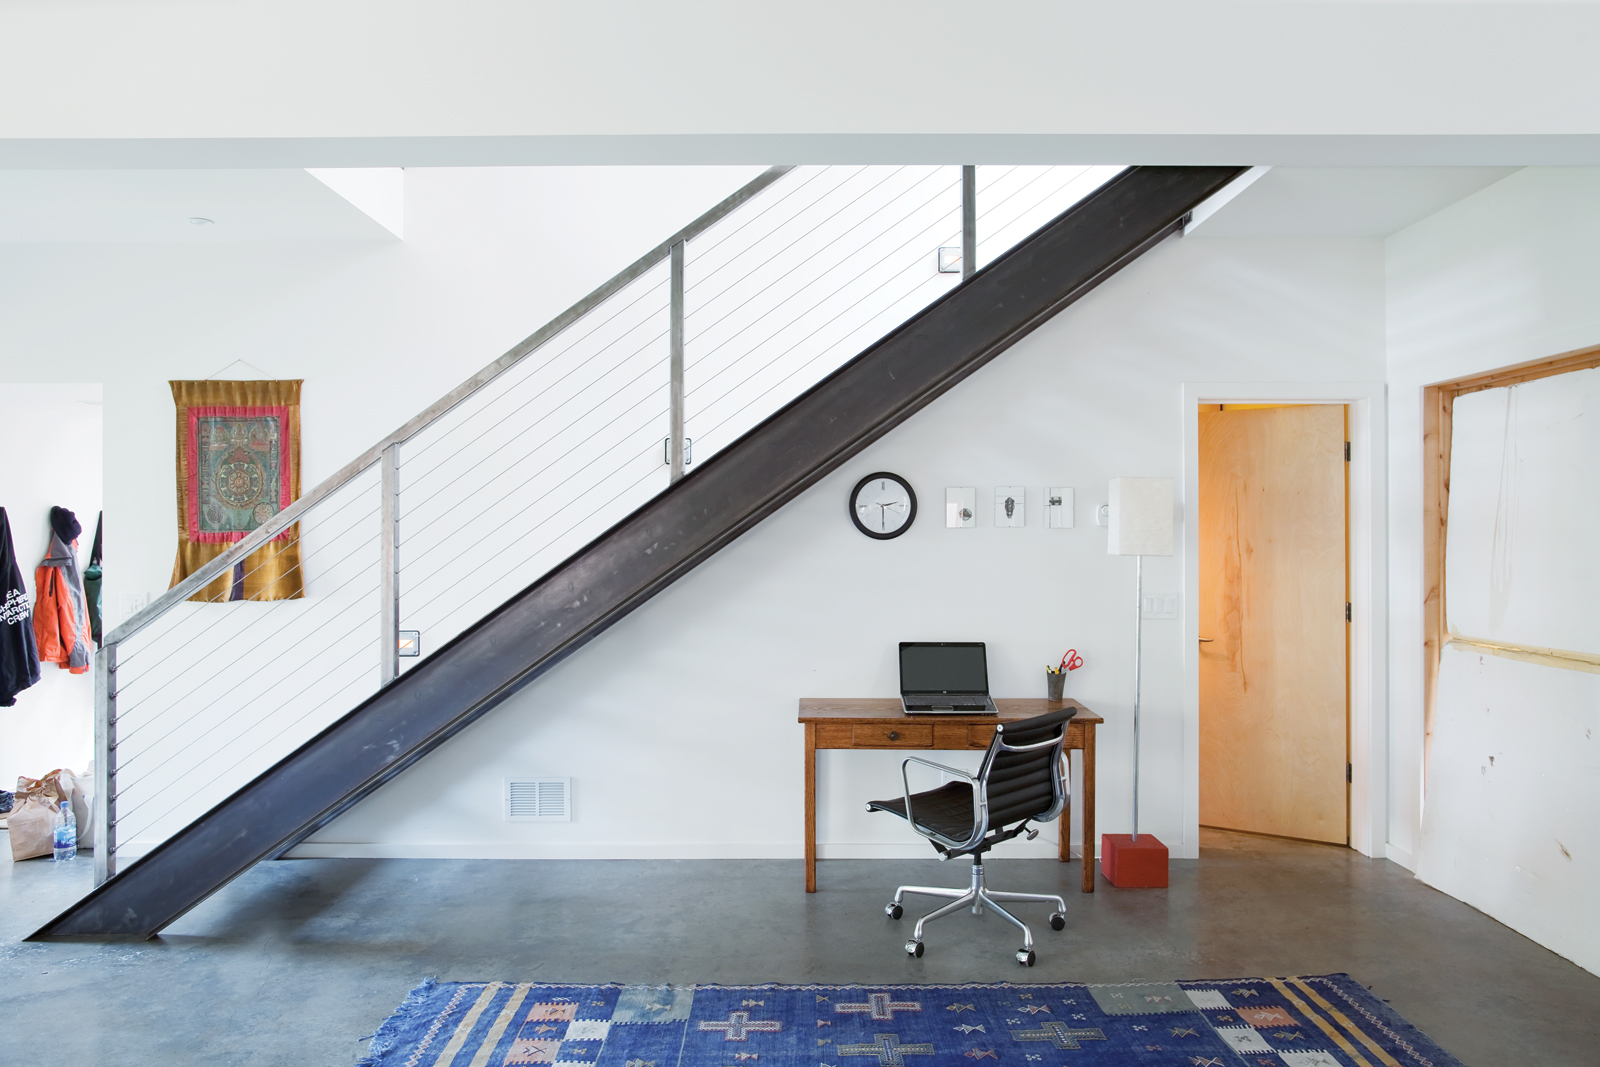 Small work table by stairs and blue patterned rug